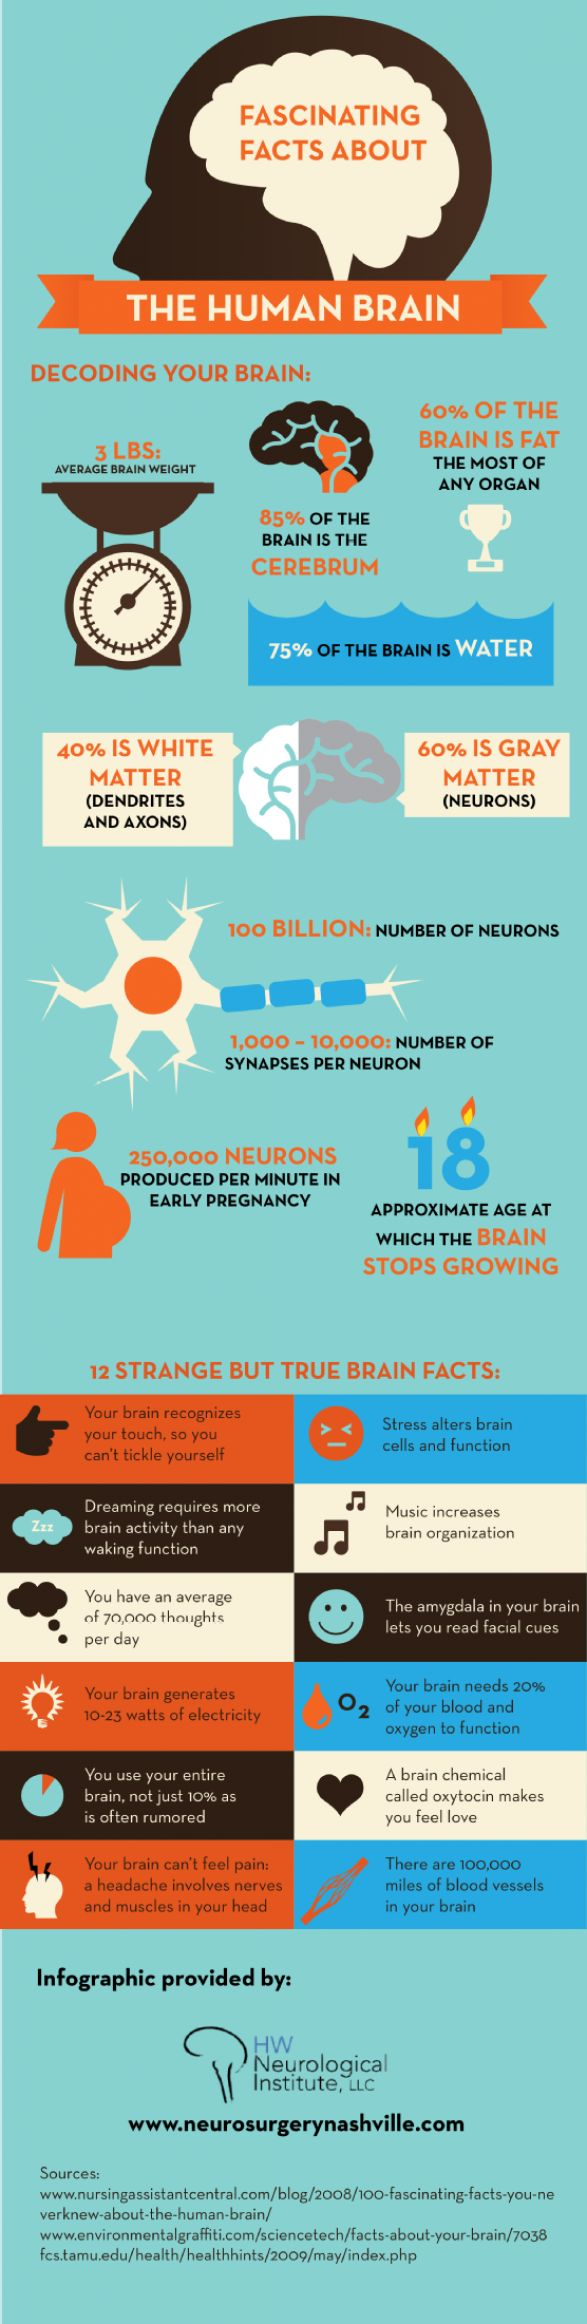 Fascinating Facts About the Human Brain